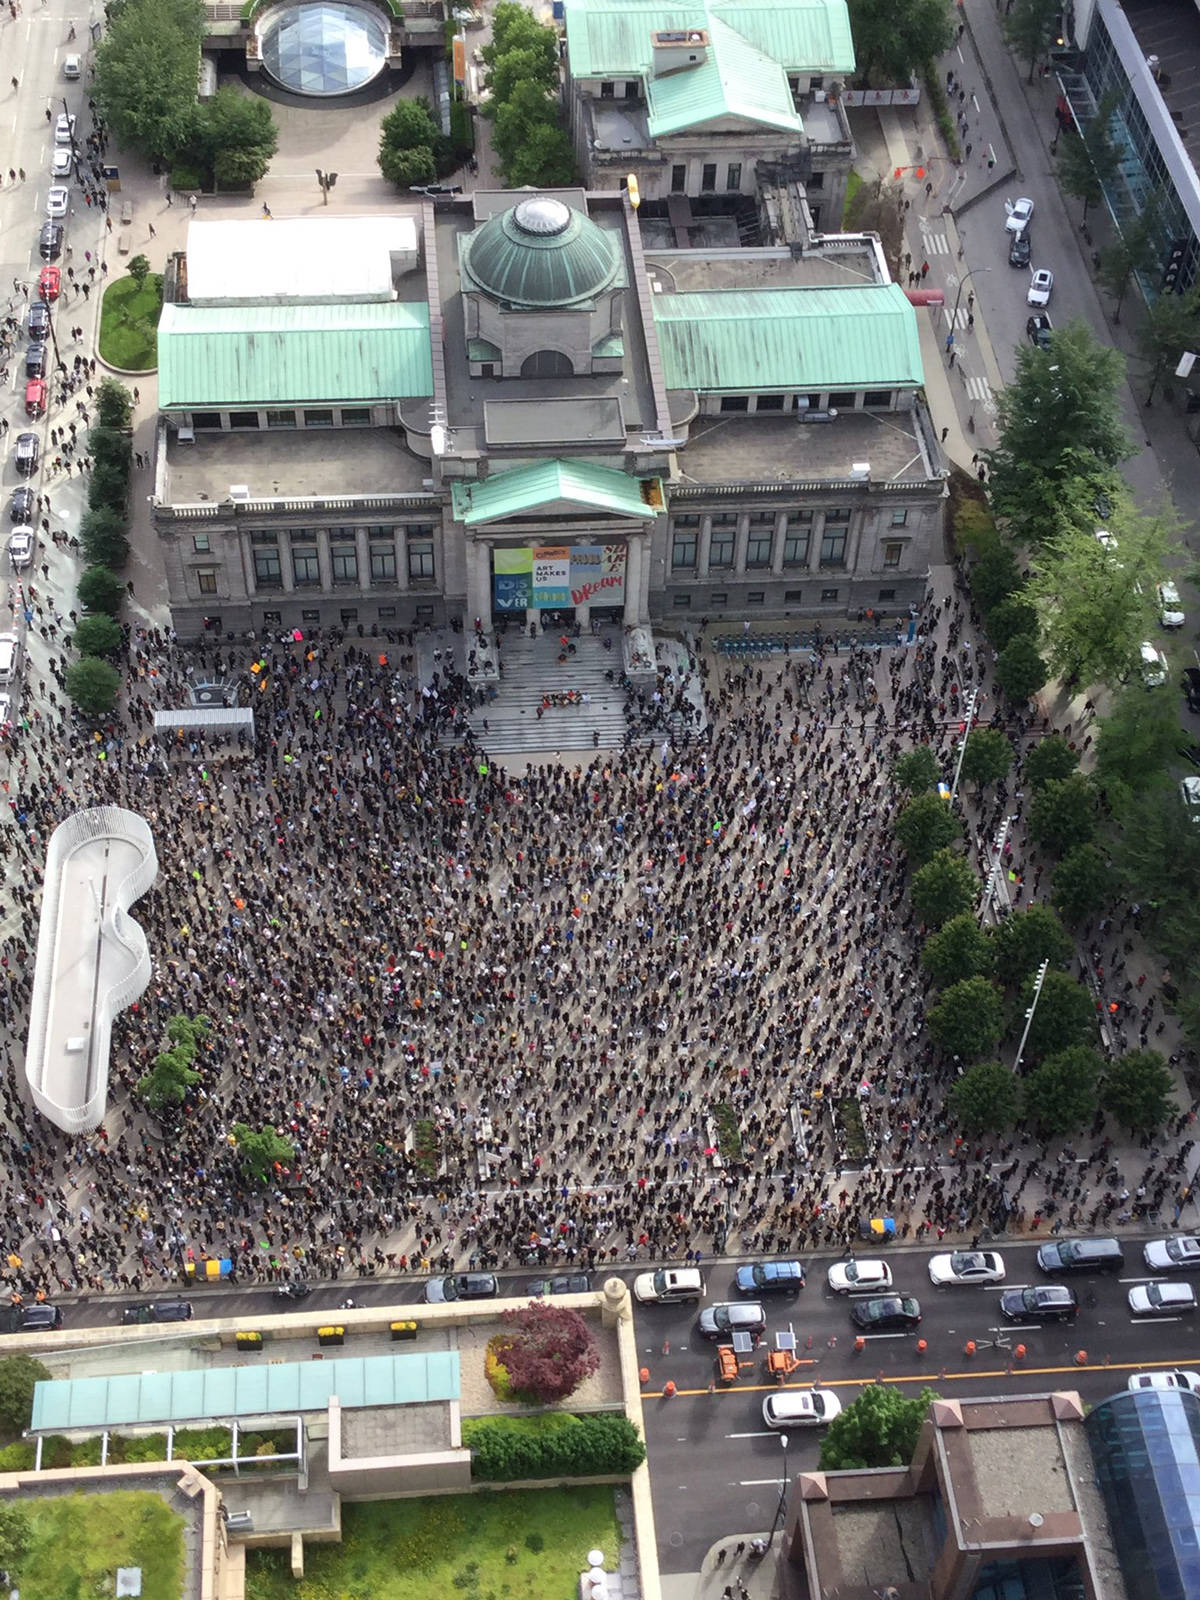 PHOTOS: Thousands gather at Vancouver Art Gallery to protest ...